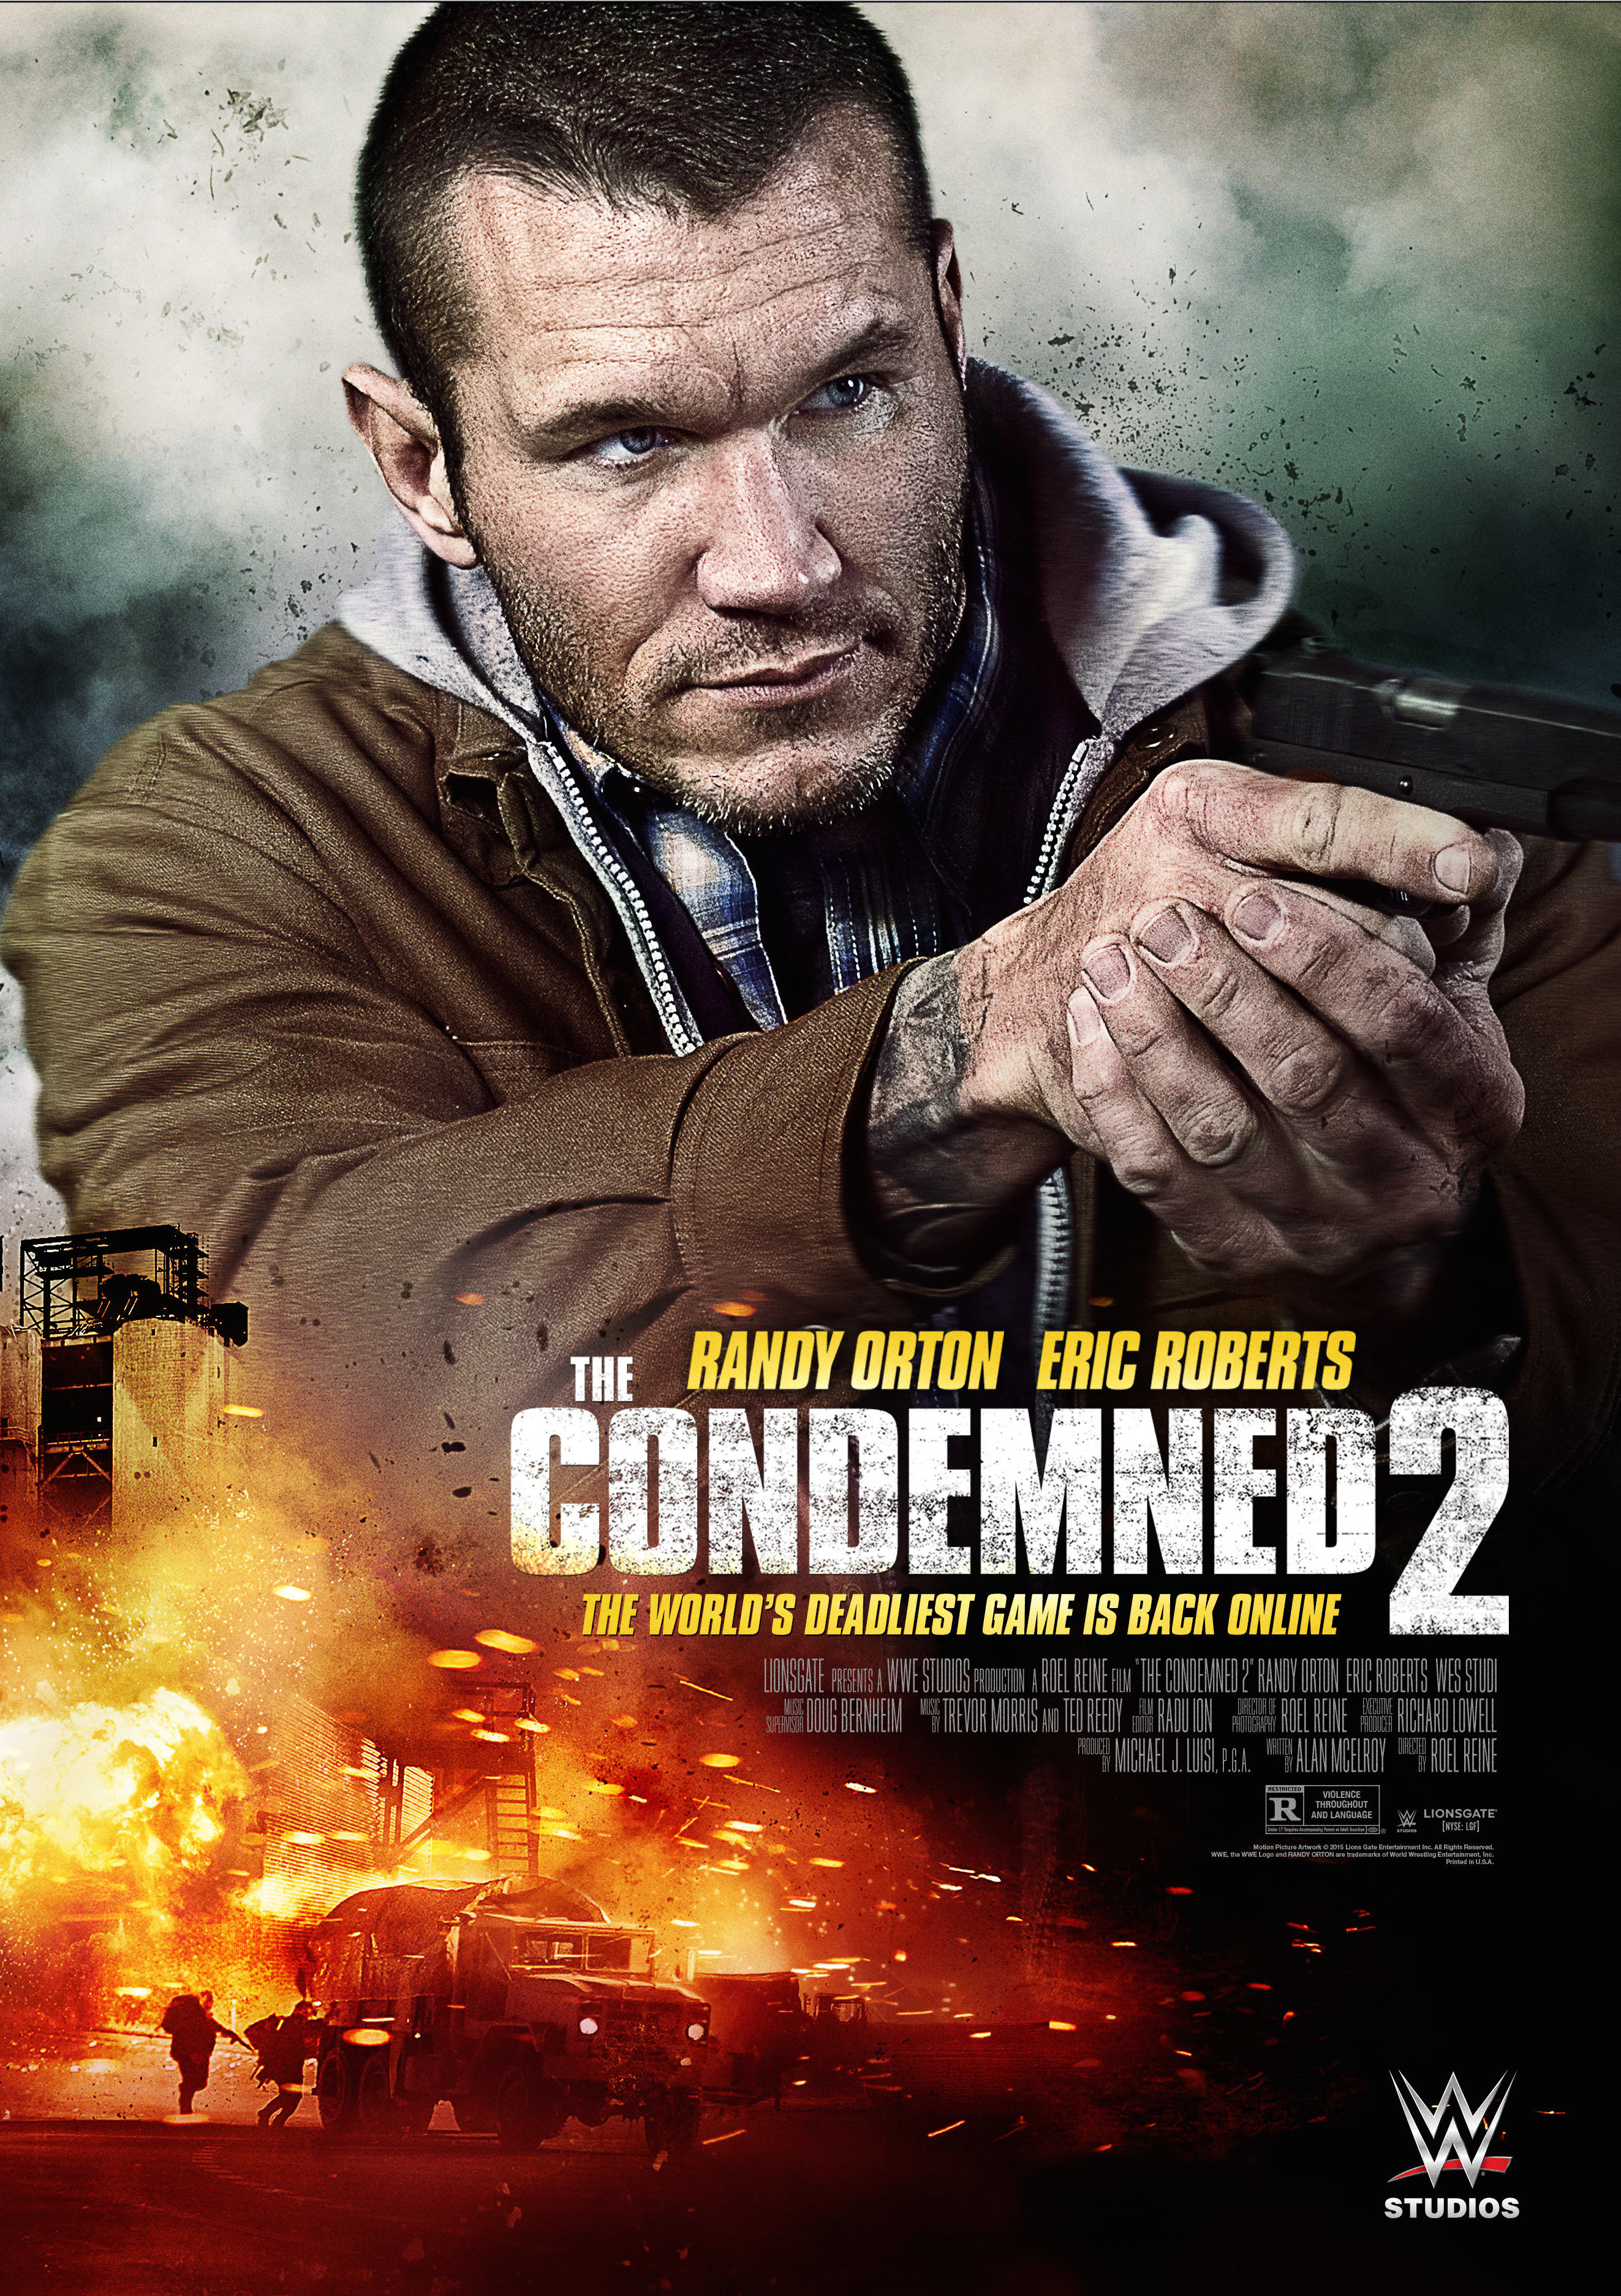 The Condemned 2 kapak